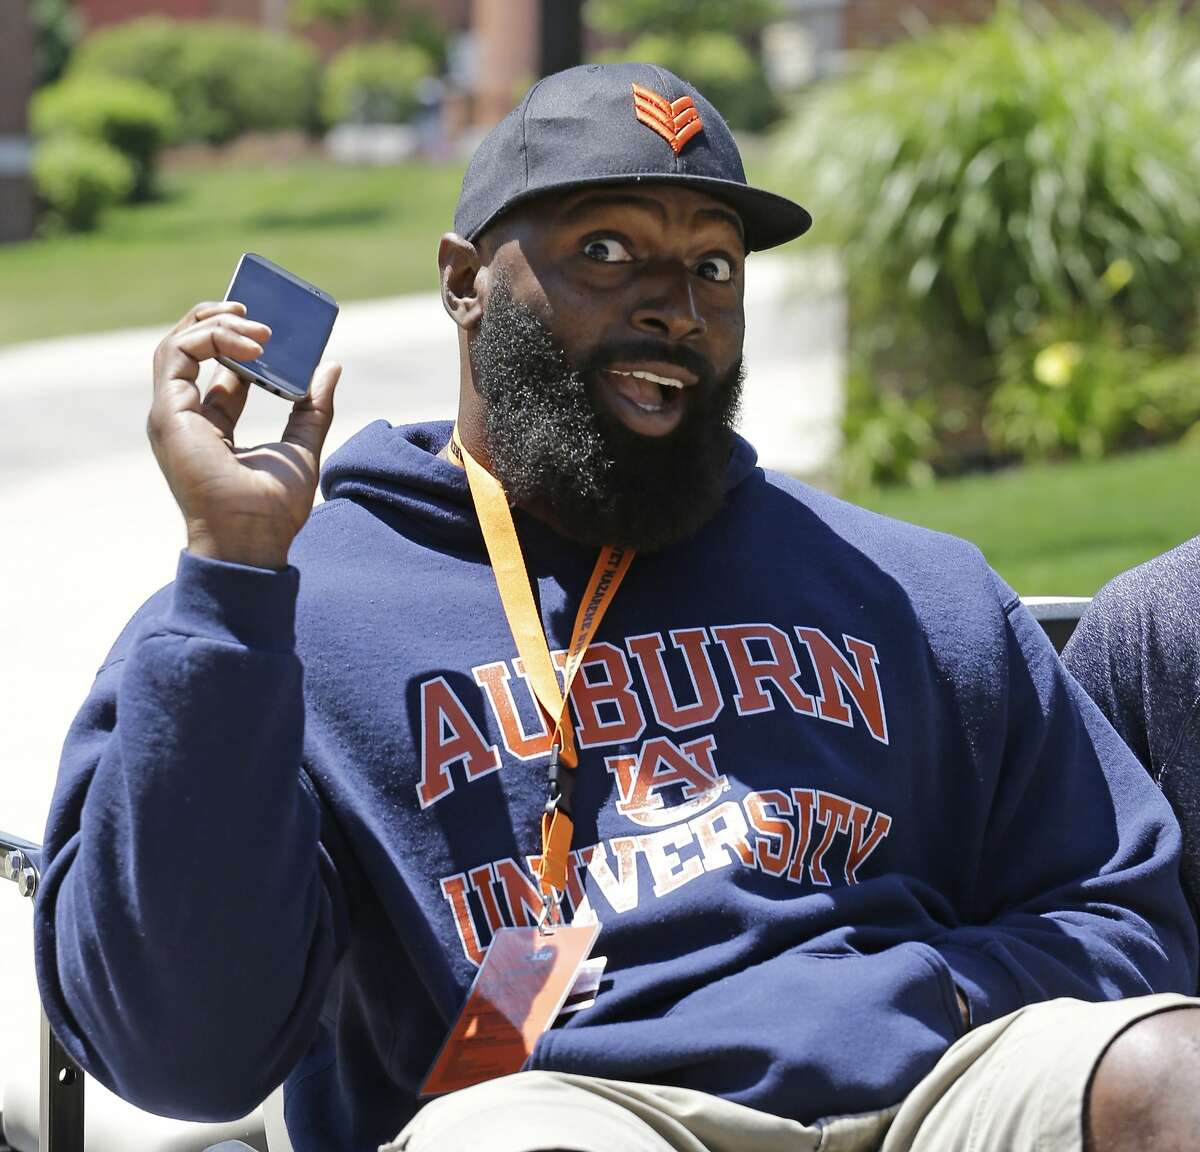 FILE - In this July 23, 2014, file photo, then-Chicago Bears defensive tackle Jeremiah Ratliff (90) poses for the media during the team's NFL football training camp at Olivet Nazarene University in Bourbonnais, Ill. A Lake Forest, Ill. police report released Friday, Oct. 30, 2015, says that the former player threatened team staff, saying he